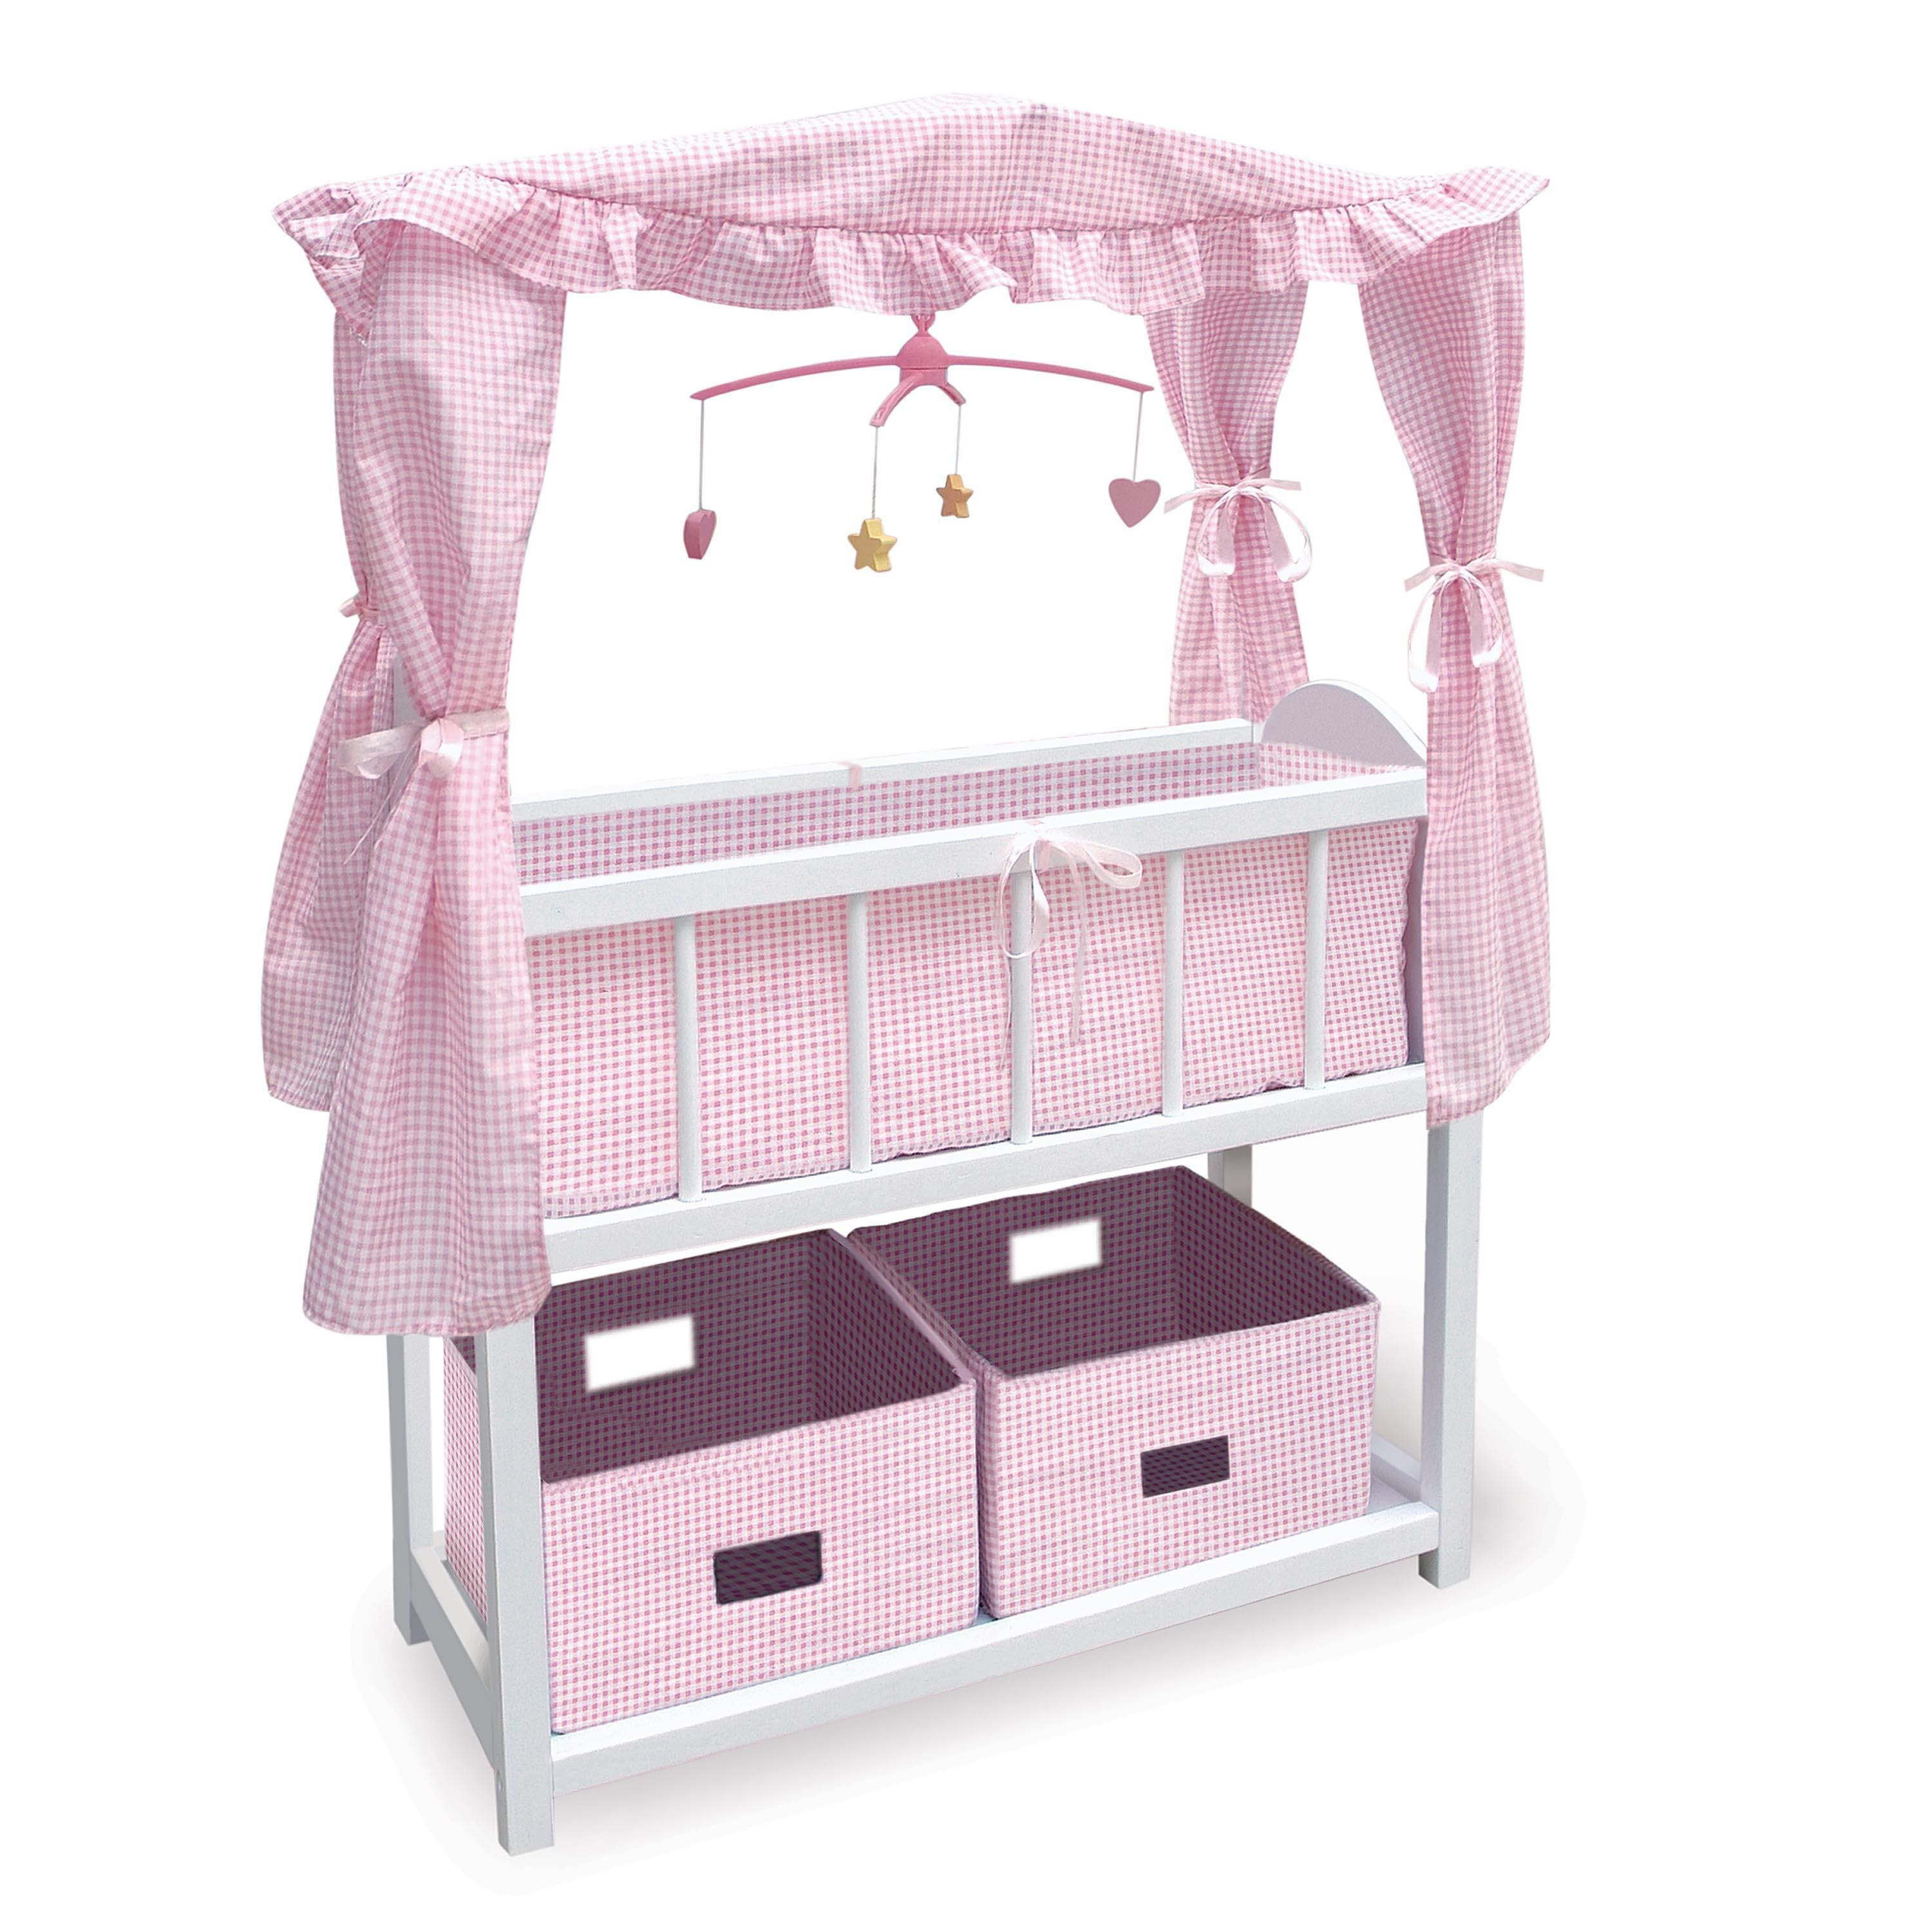 Badger Basket Canopy Doll Crib with Baskets Bedding u0026 Mobile (fits American Girl dolls)  sc 1 st  Pinterest & Useful White Wooden Baby Crib with Two Storages Underneath and ...